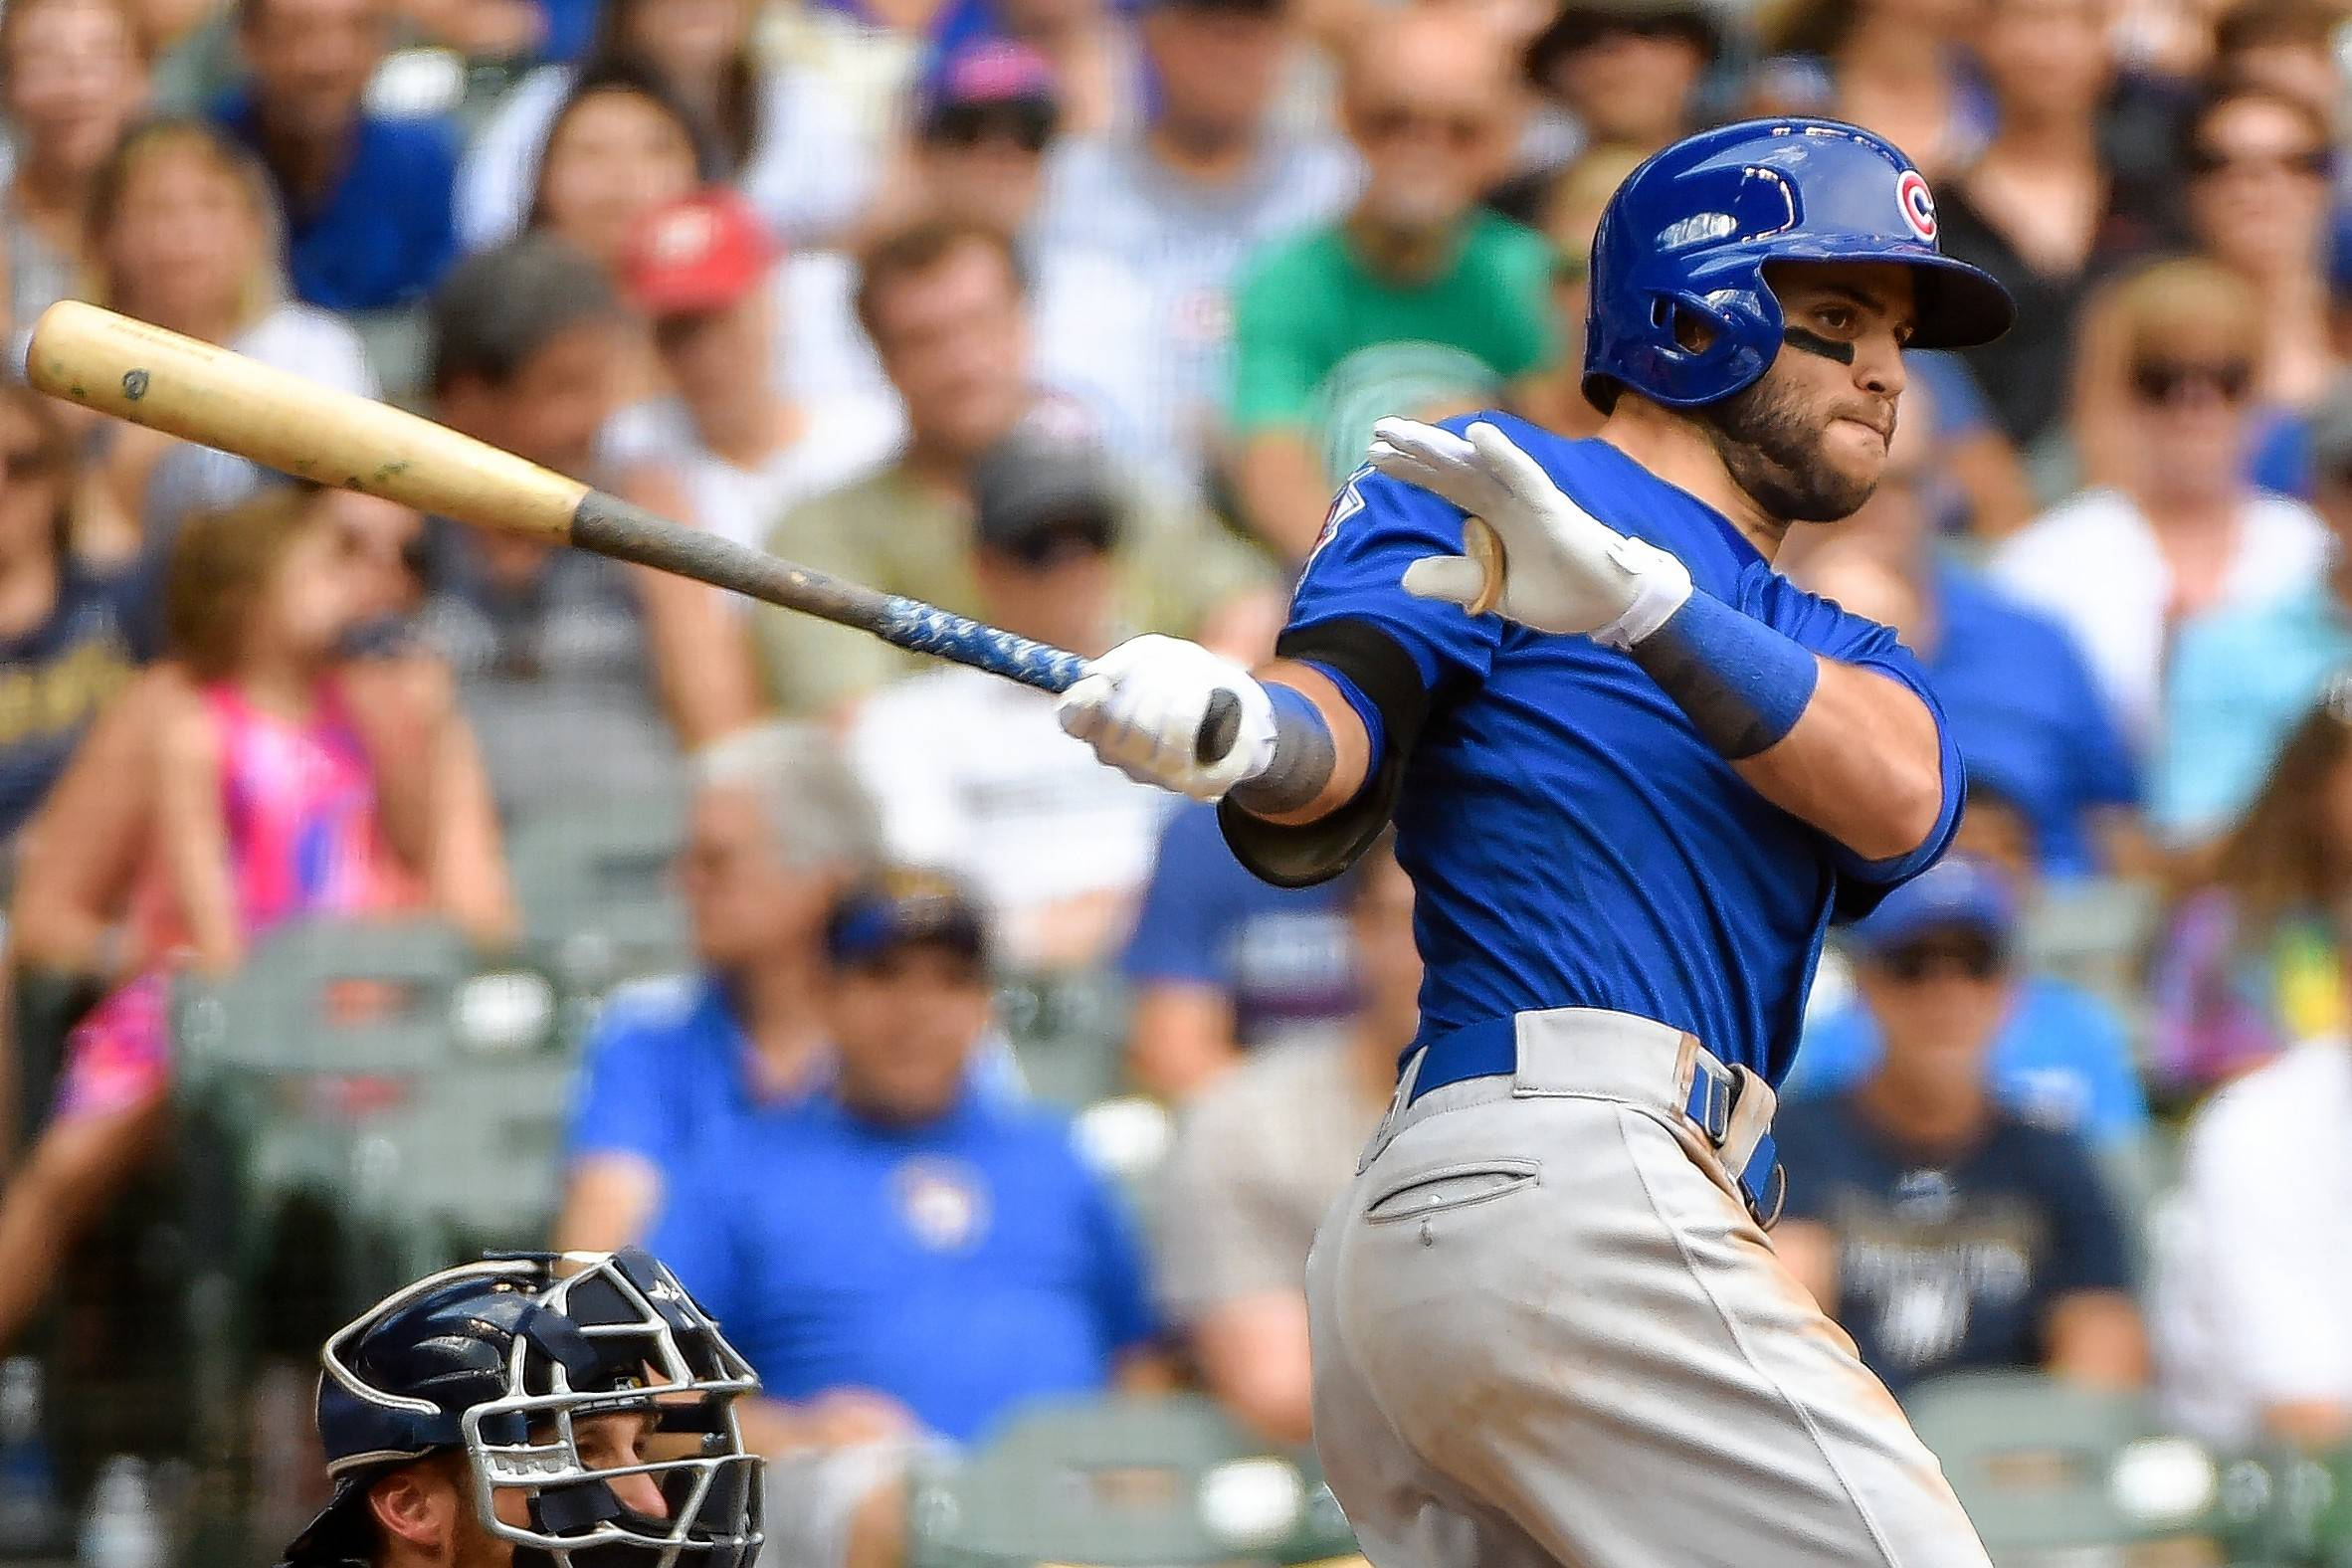 The Cubs activated outfielder Chris Coghlan off the disabled list Friday and optioned infielder Tommy La Stella, above, to Triple-A Iowa. La Stella, was hitting .295 in 105 at-bats with a .388 on-base percentage.